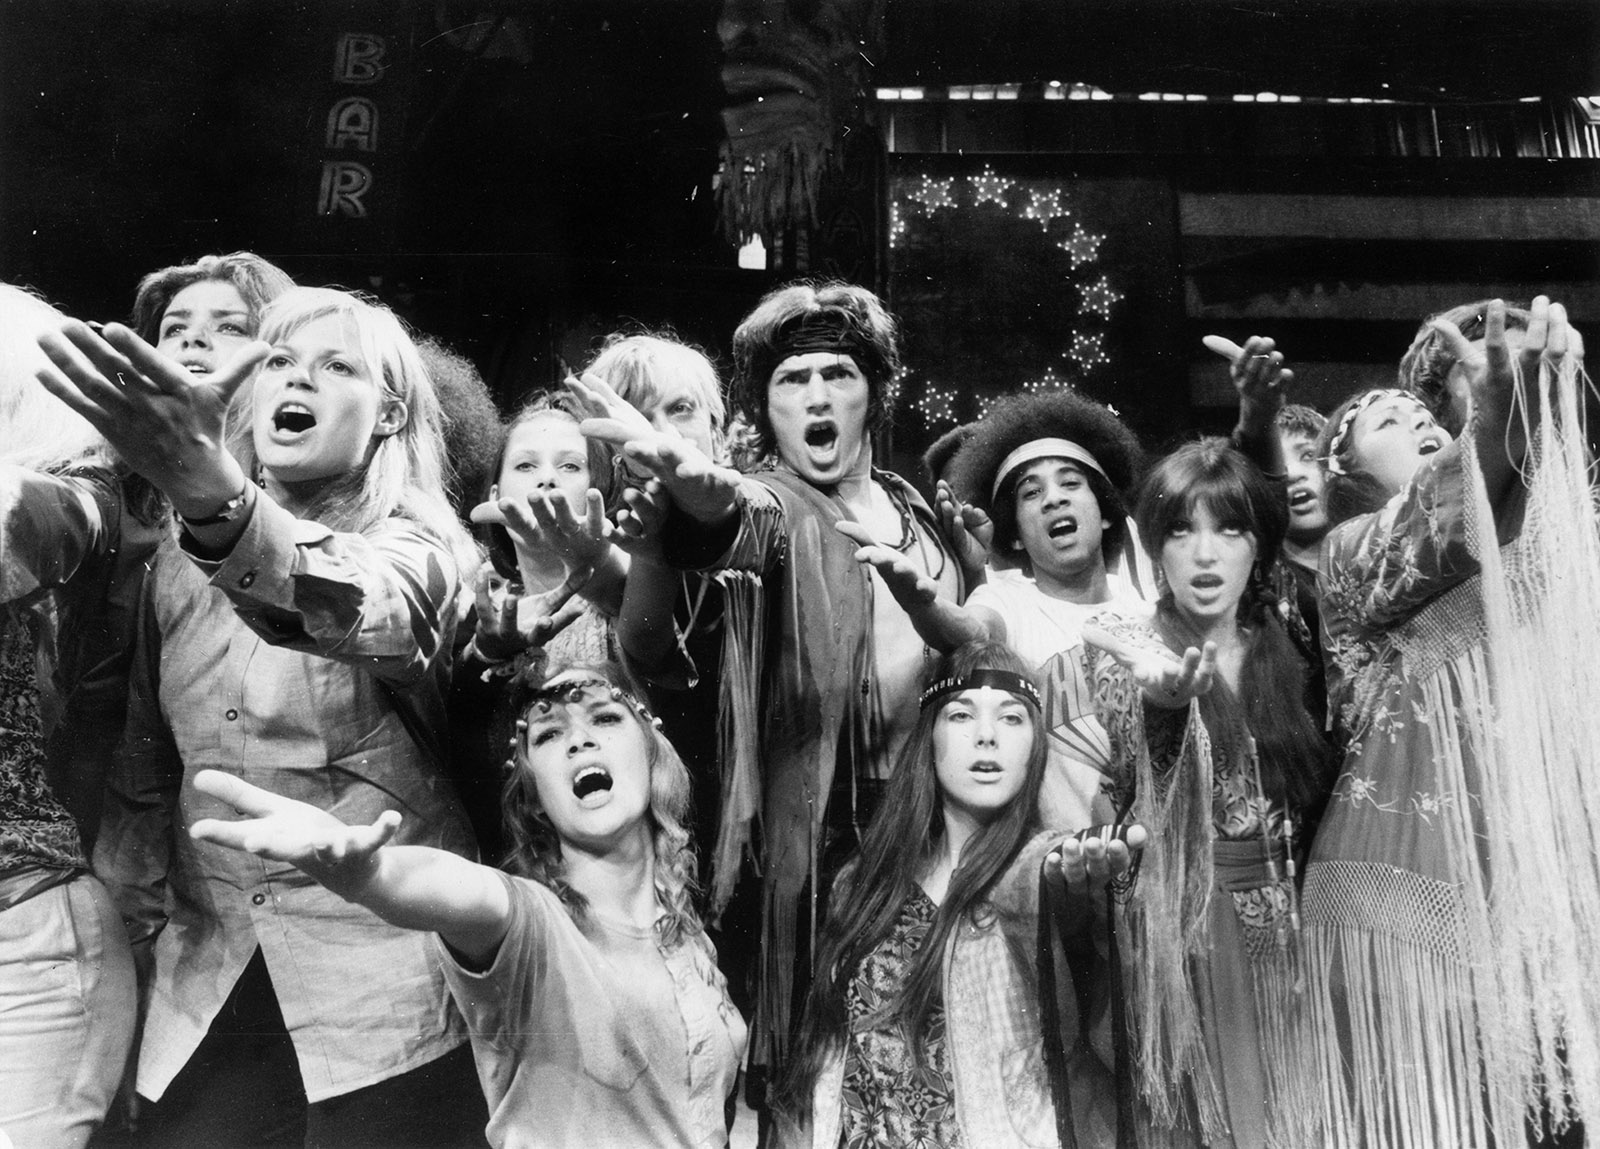 A rehearsal of the musical Hair at the Shaftesbury Theatre, London, September 1968